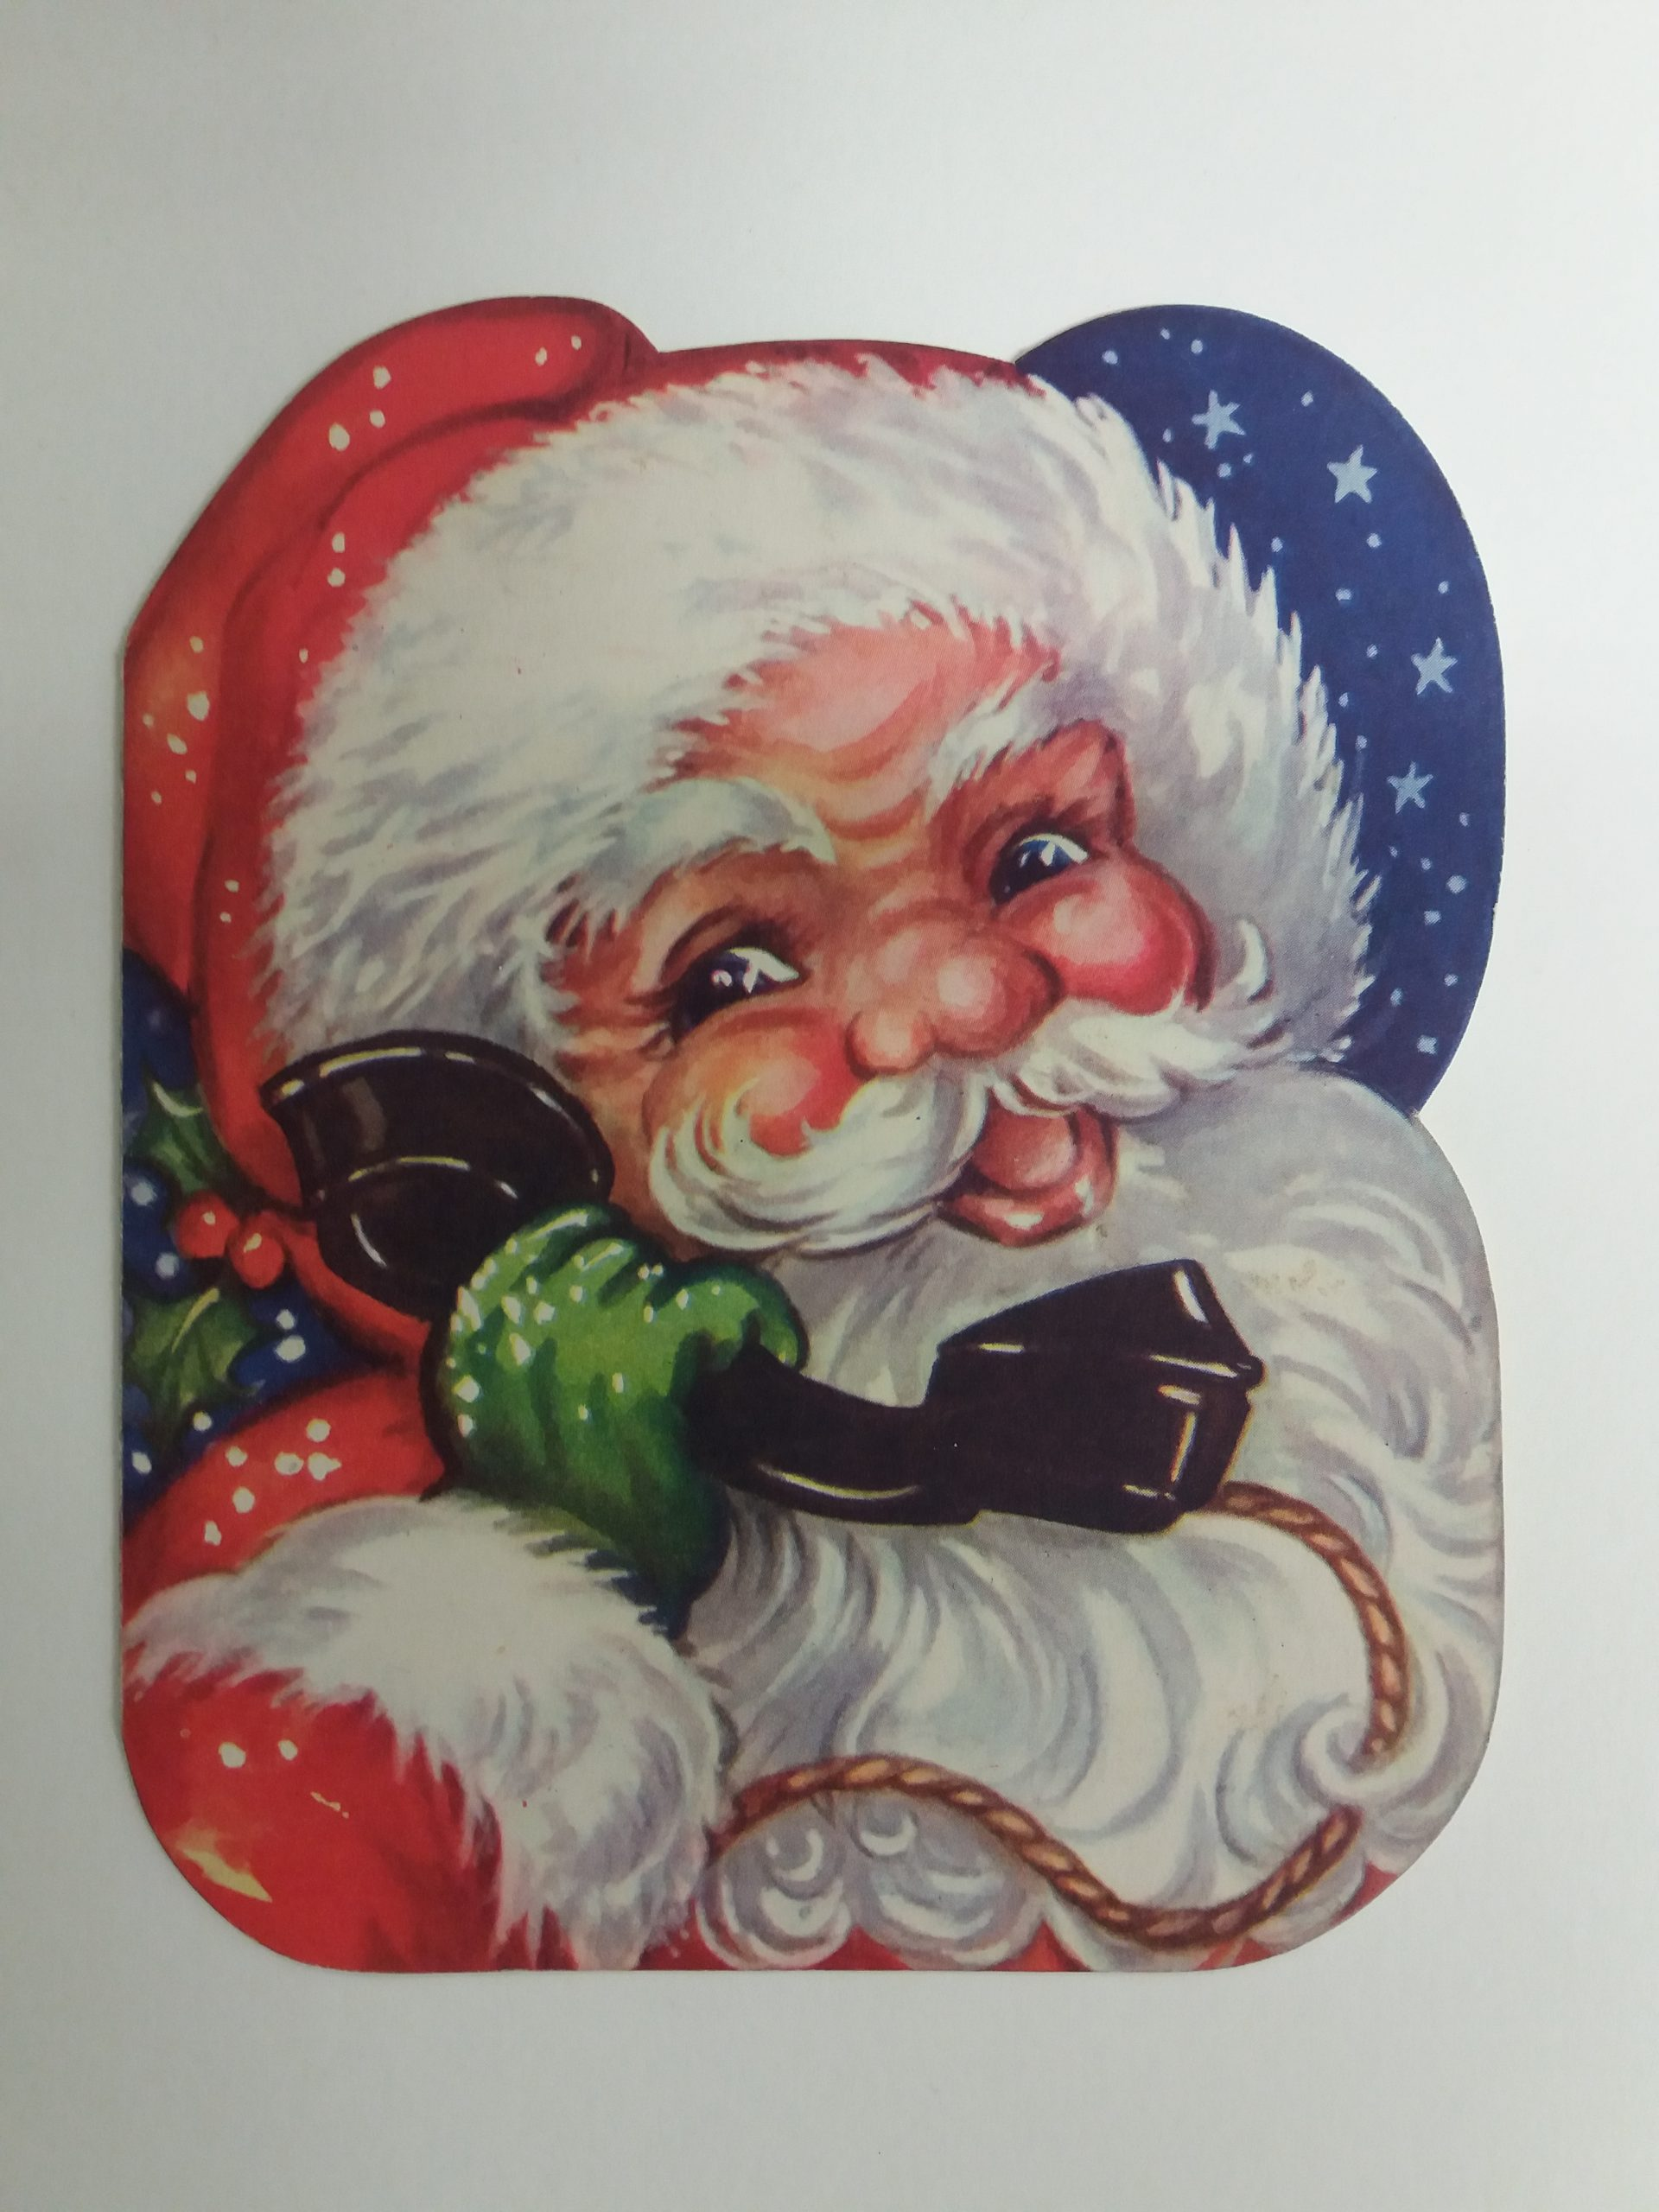 Colour image of Father Christmas holding an old style black telephone handset